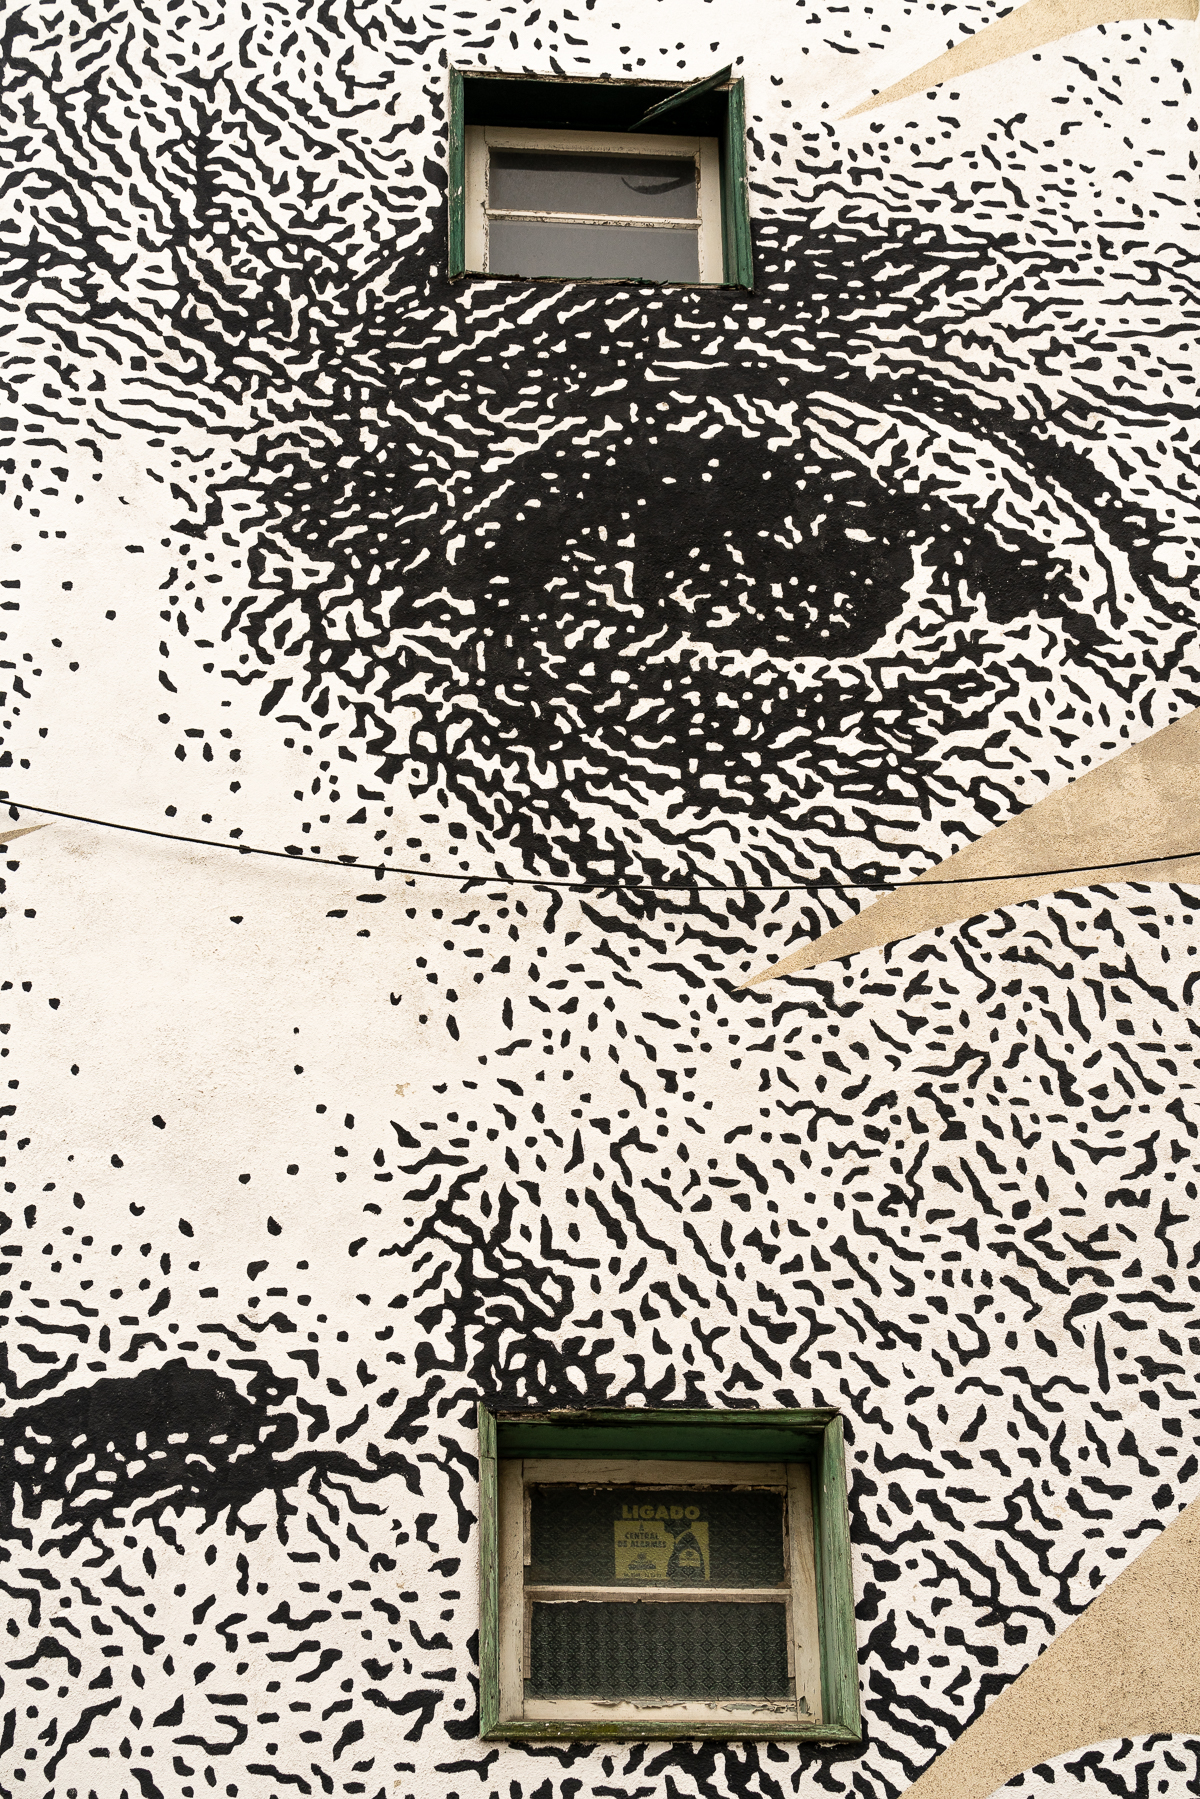 close up of the stencilled black and white mural of the face of Sophia